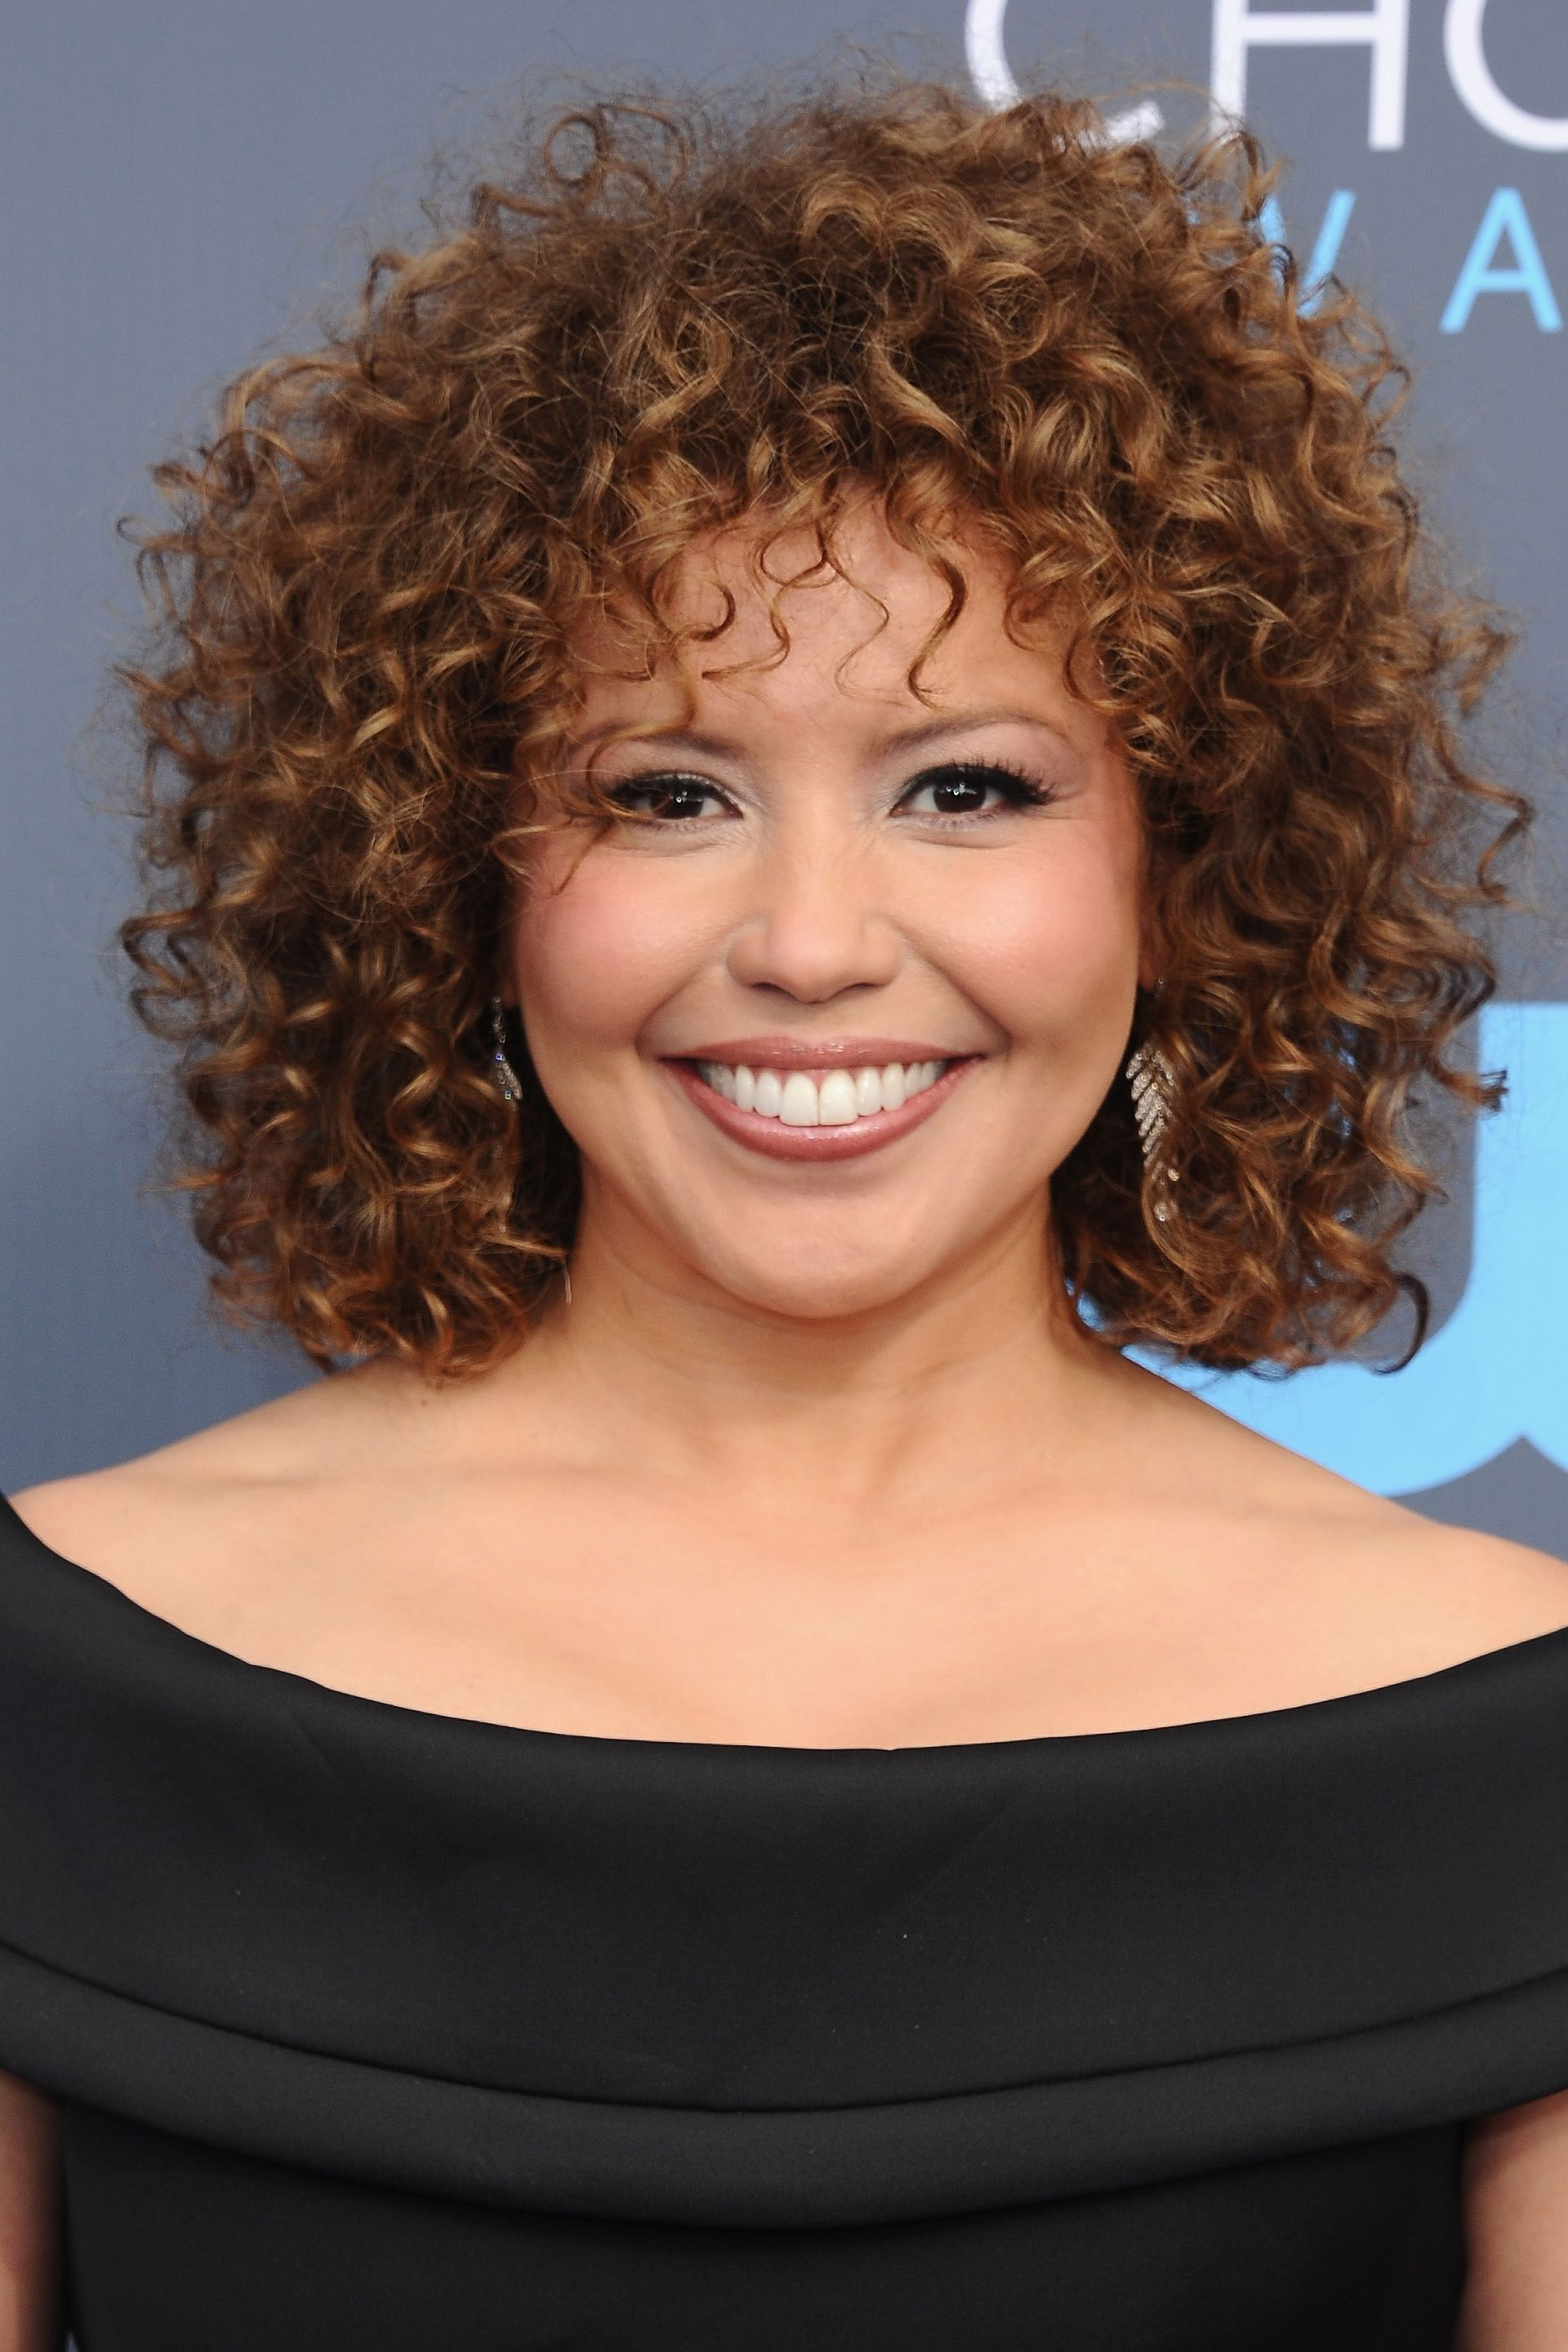 19 Celebrity Short Curly Hair Ideas Haircuts And Hairstyles For